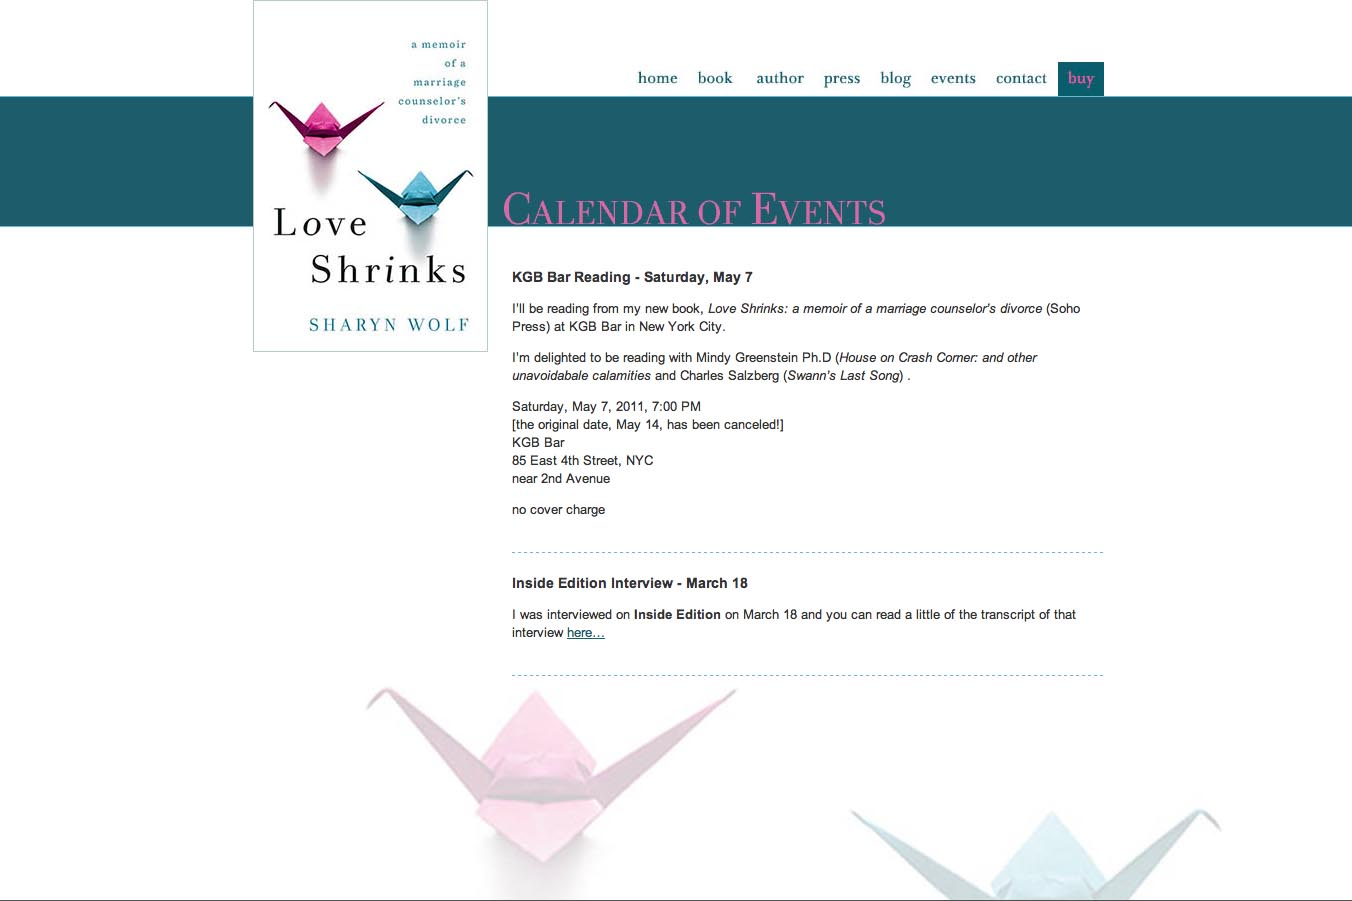 web design for a book by a relationships therapist - events page